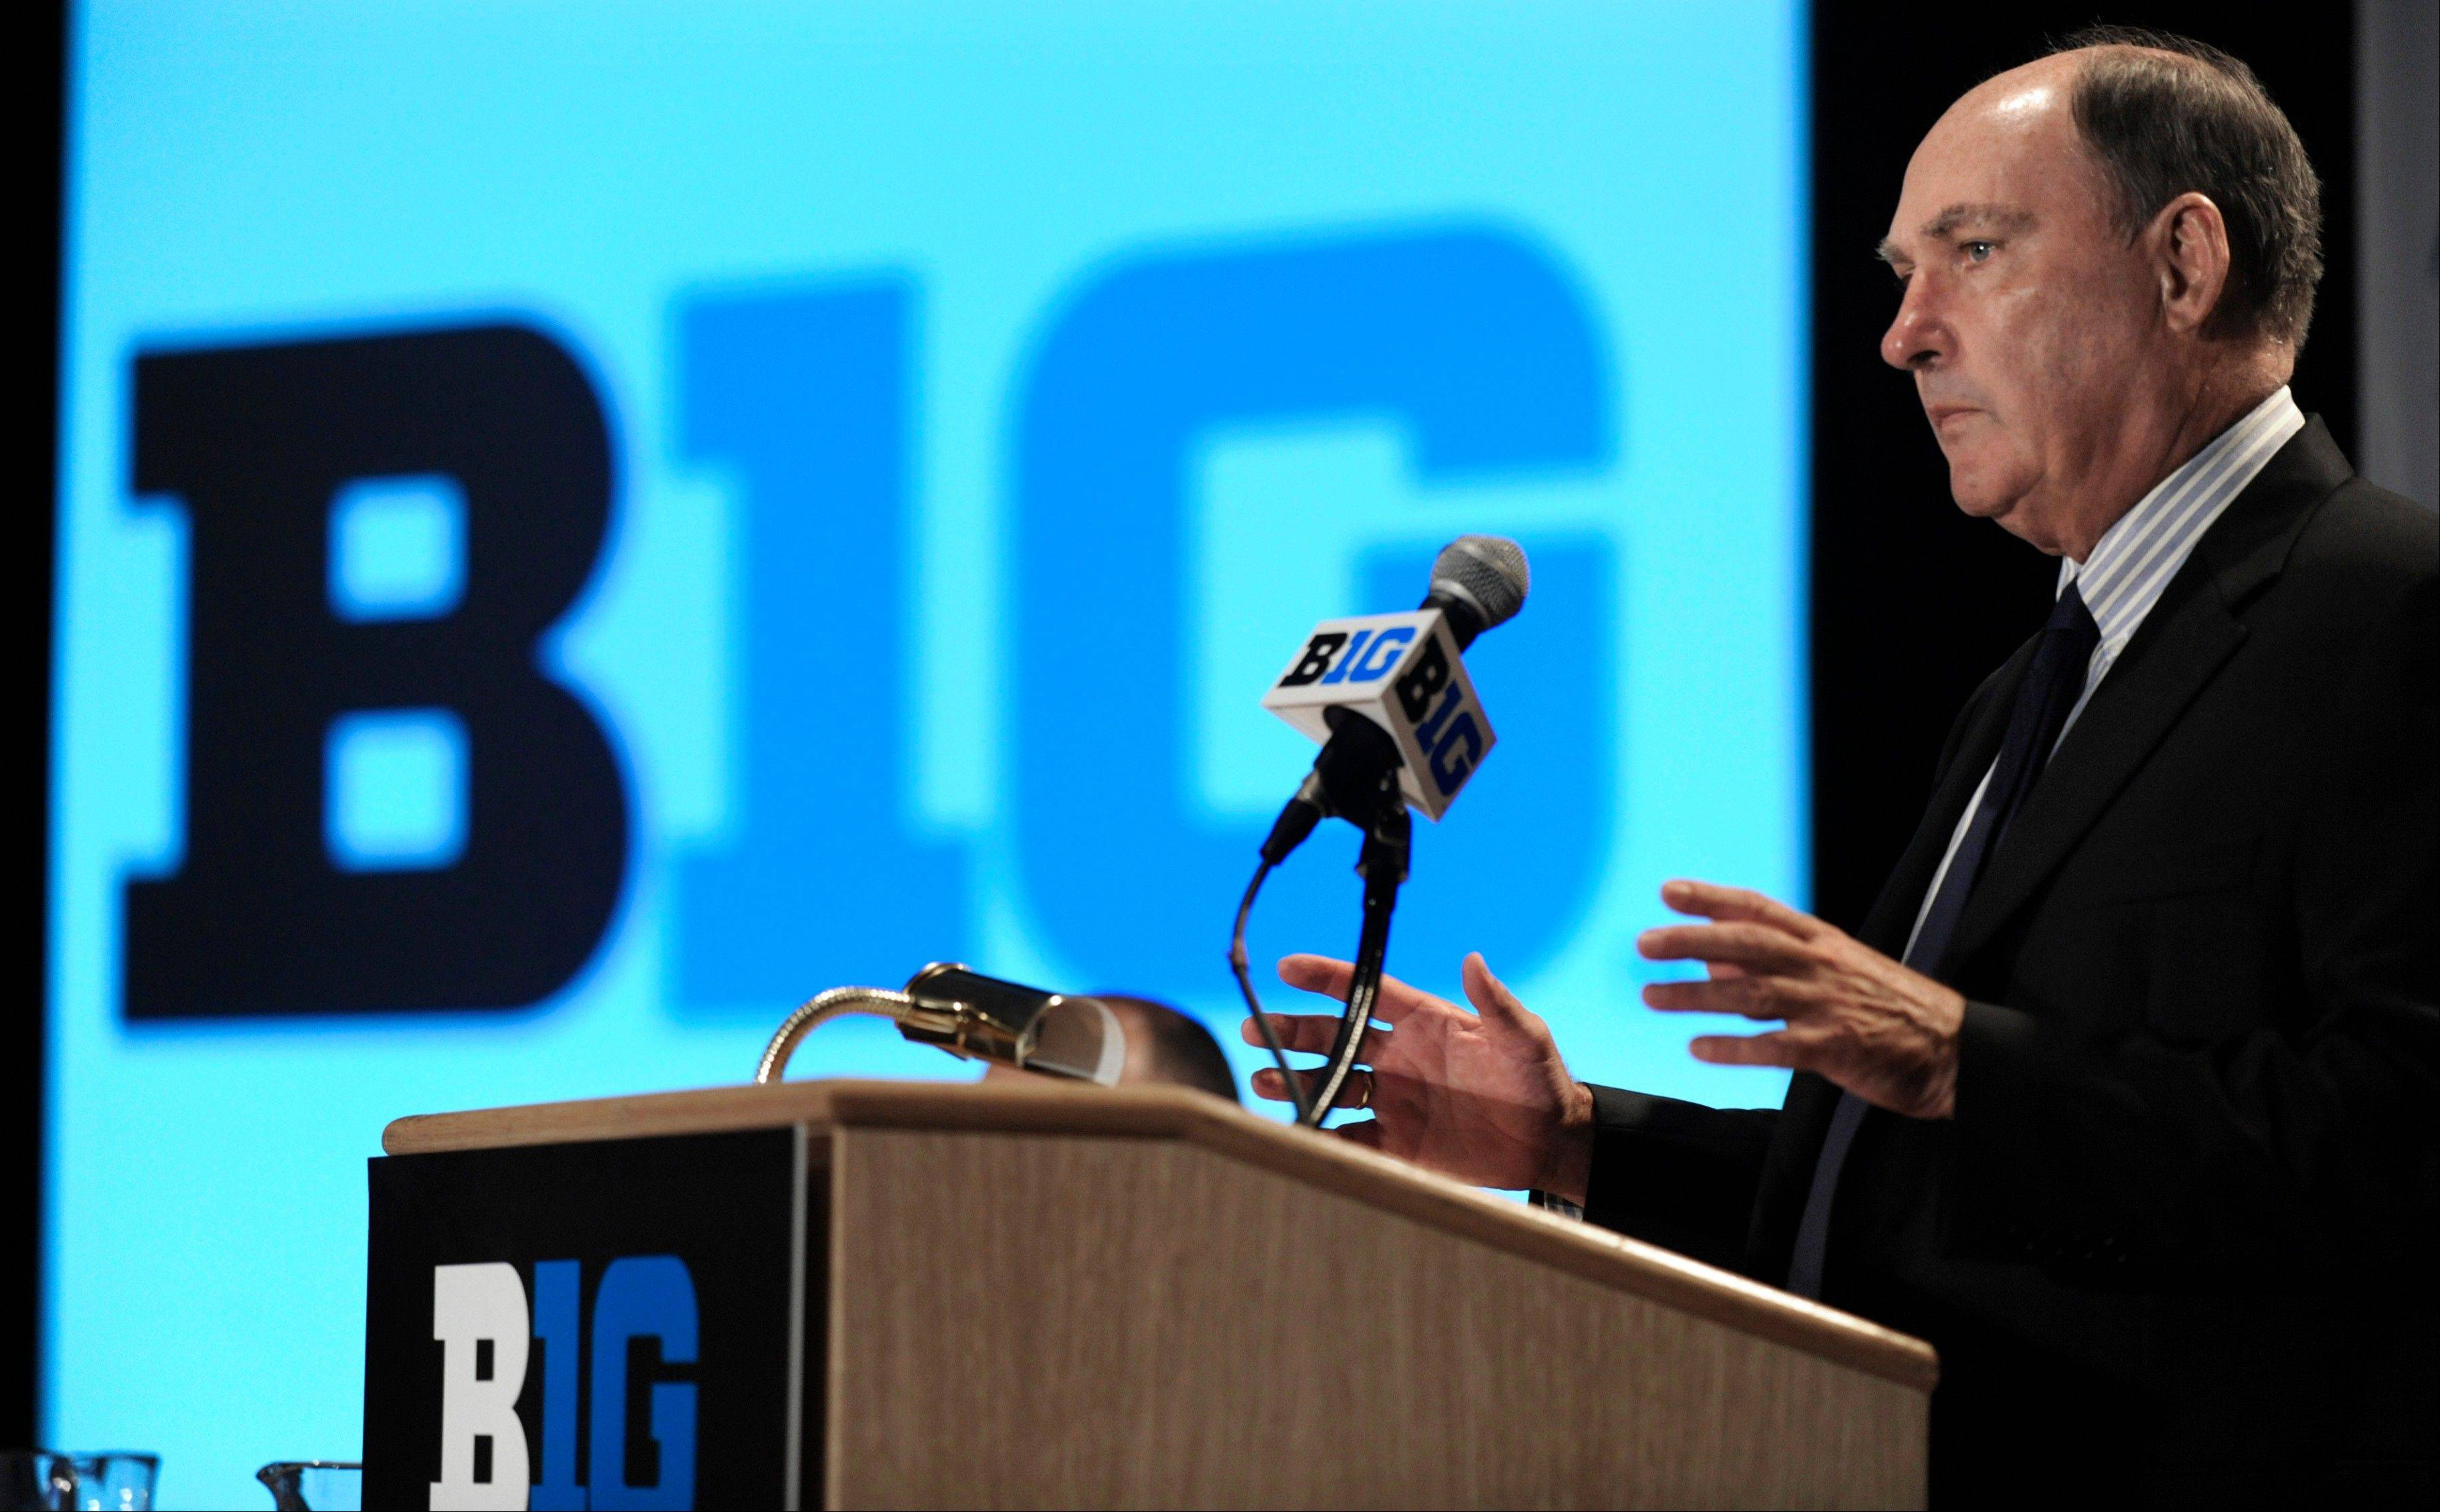 Big Ten commissioner Jim Delany has said he doesn't believe member schools would be interested if a court ruling requires a pay-for-play model that involves contracts and individual negotiations with college recruit.